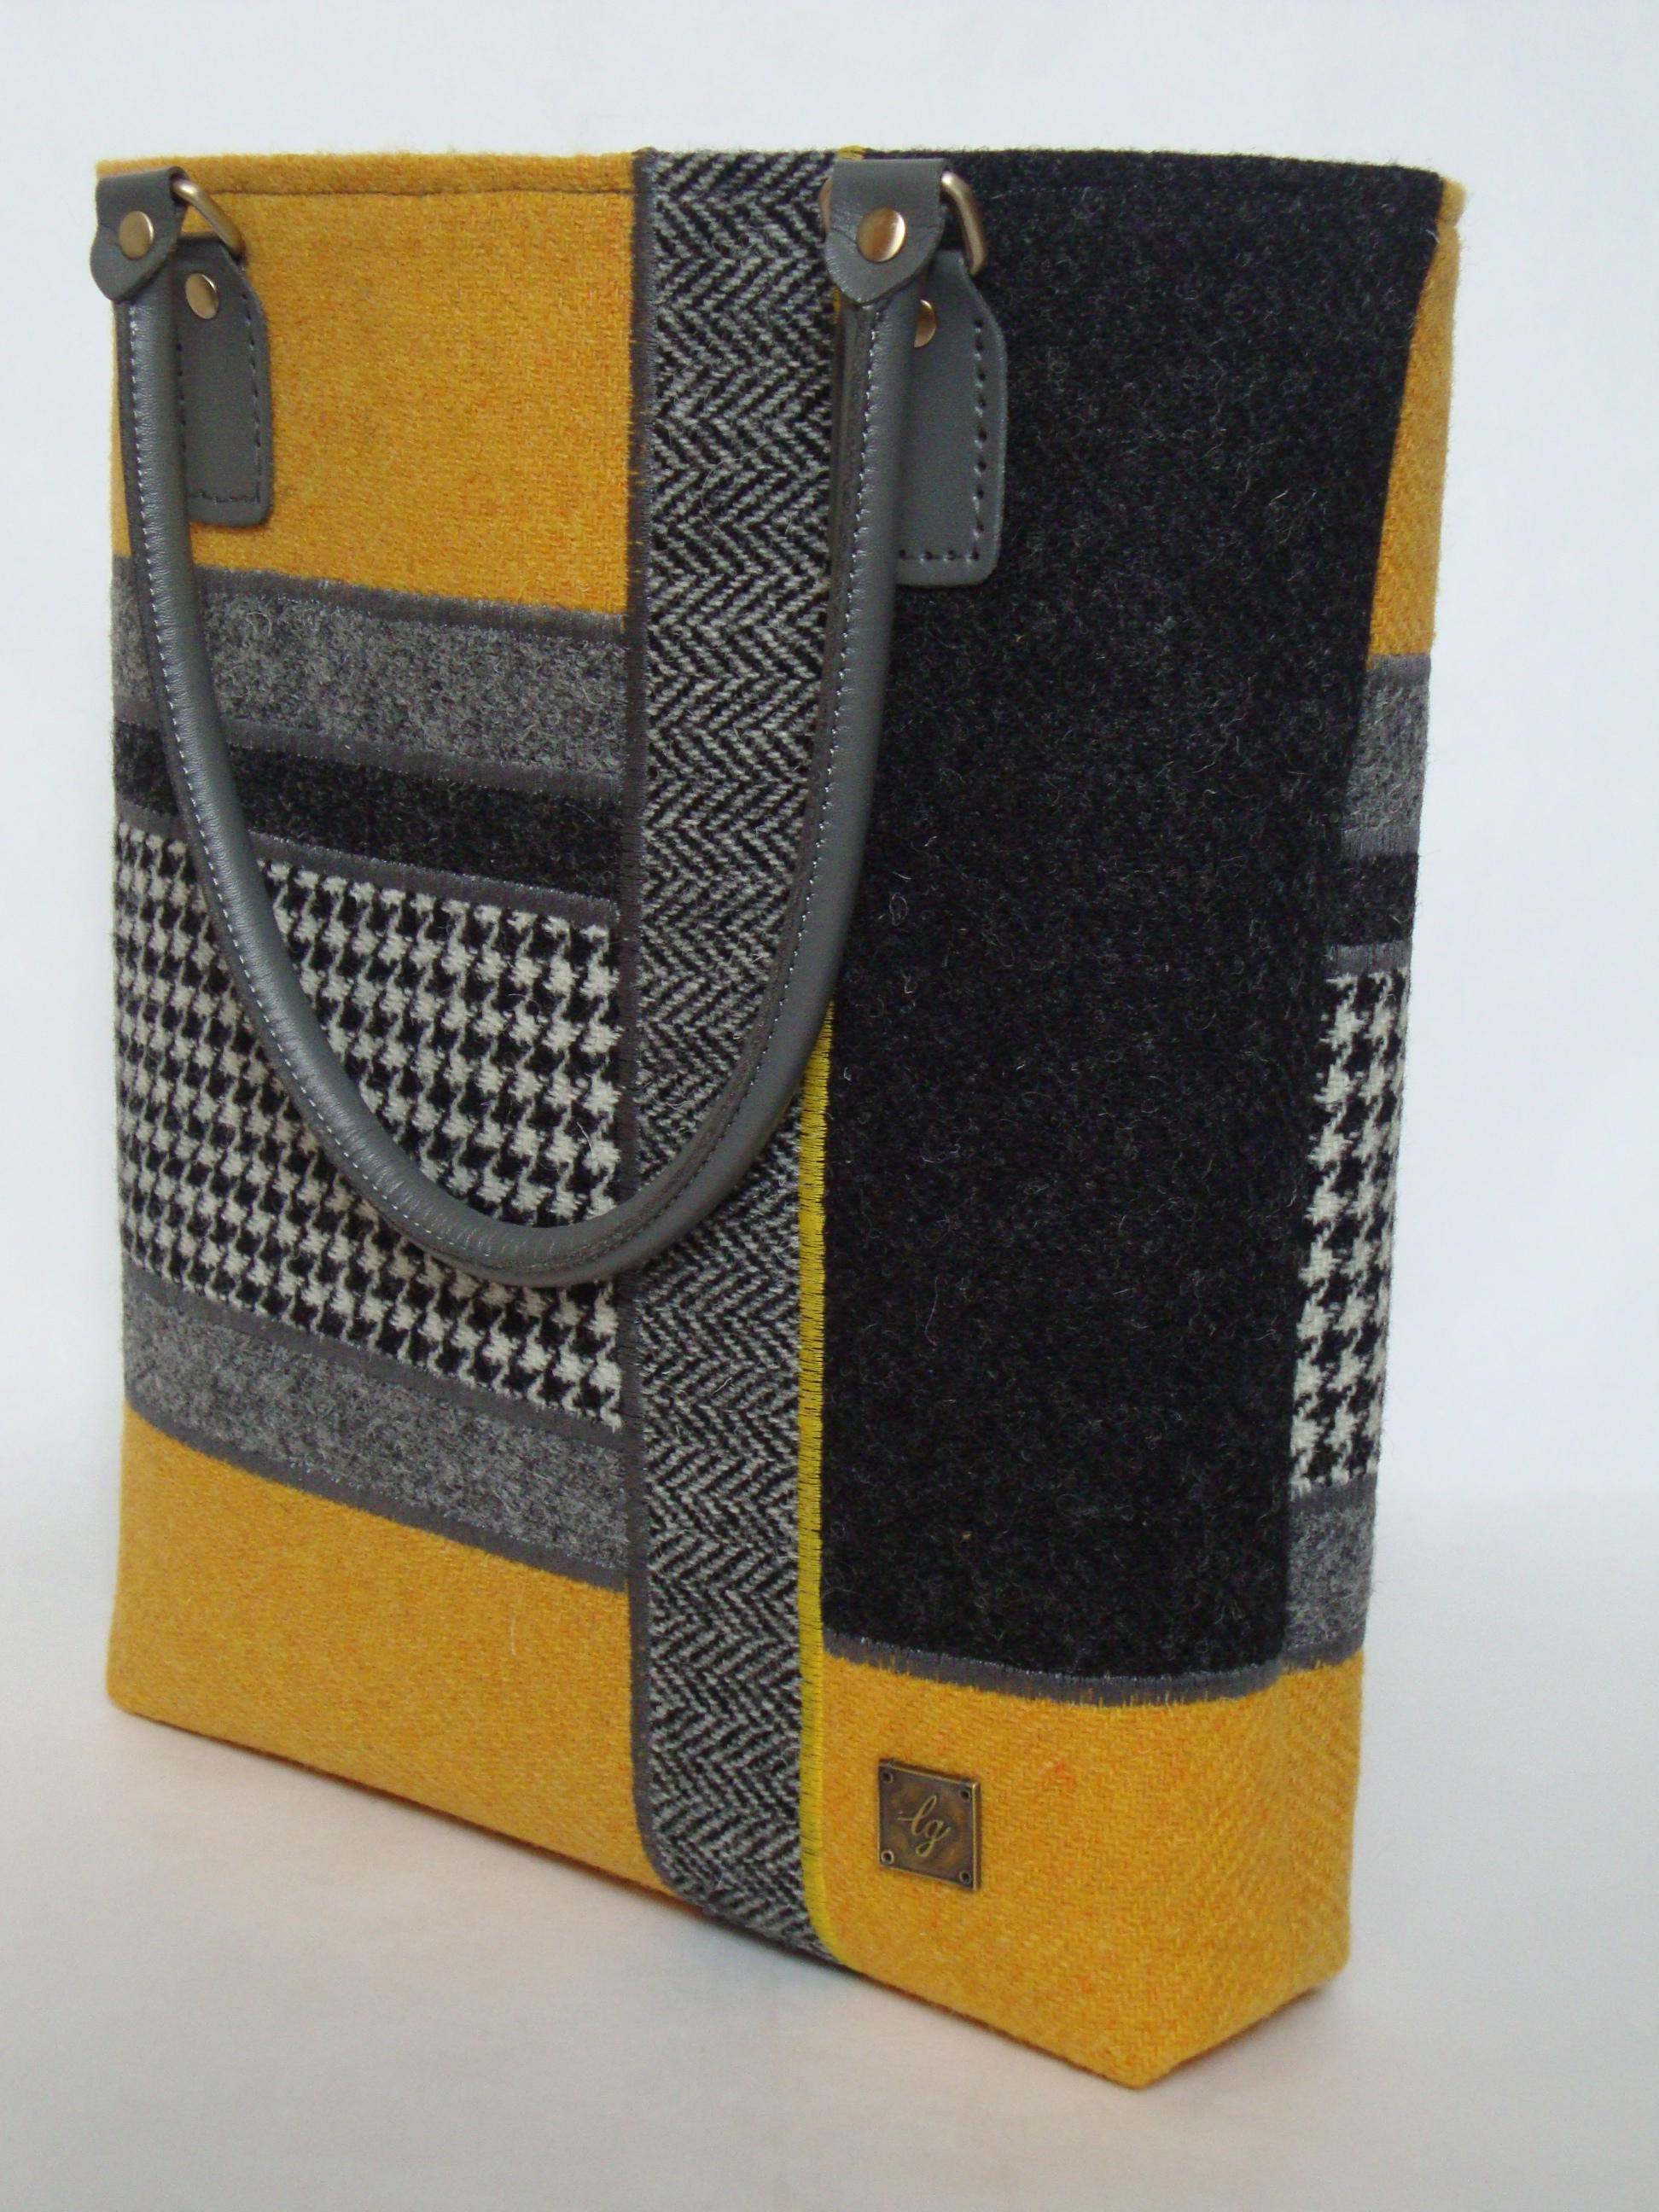 Large grey and yellow bag